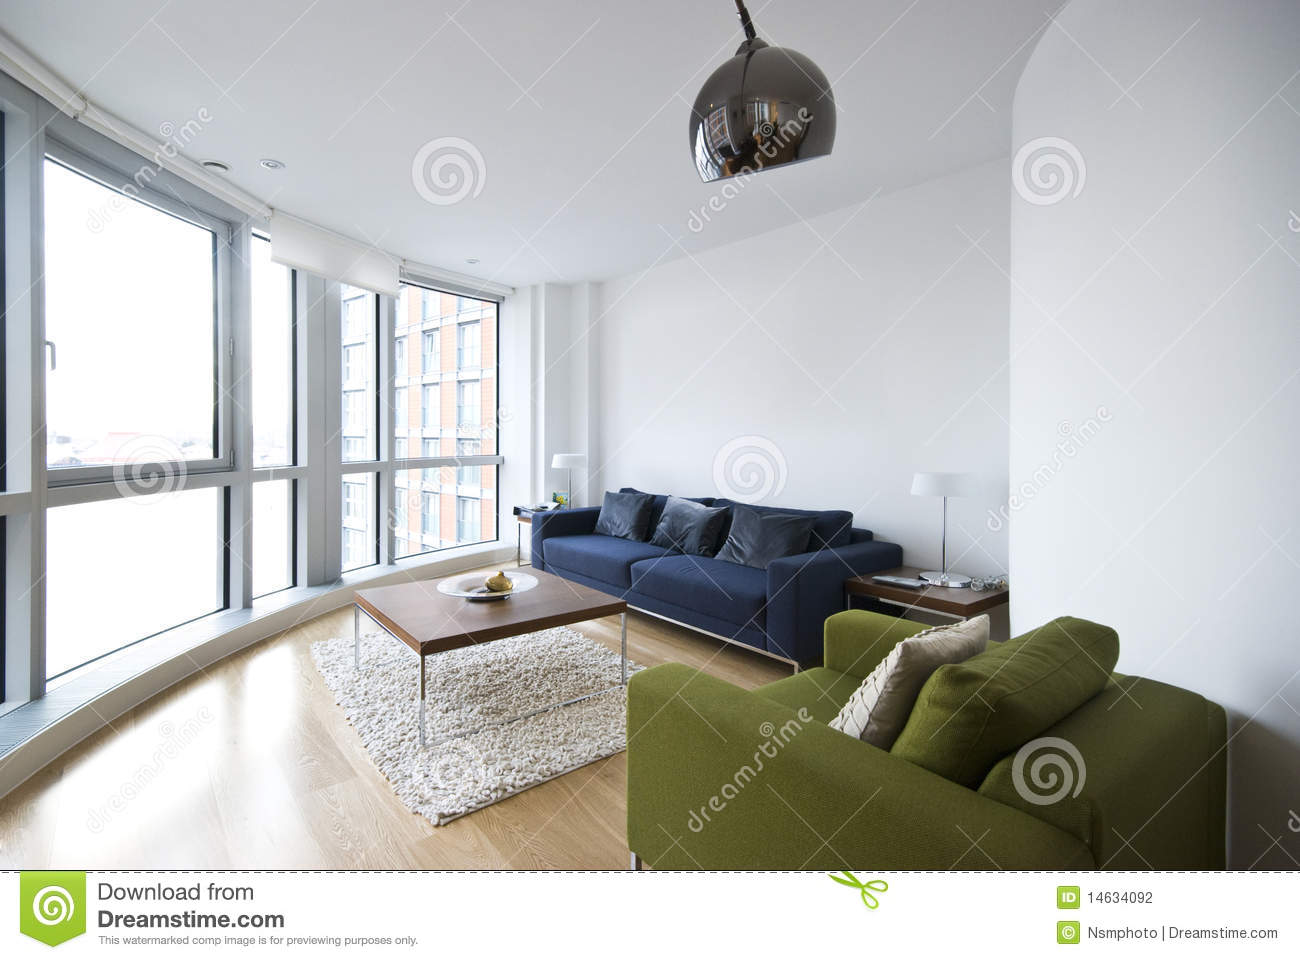 Modern Living Room With Floor To Ceiling Windows Stock